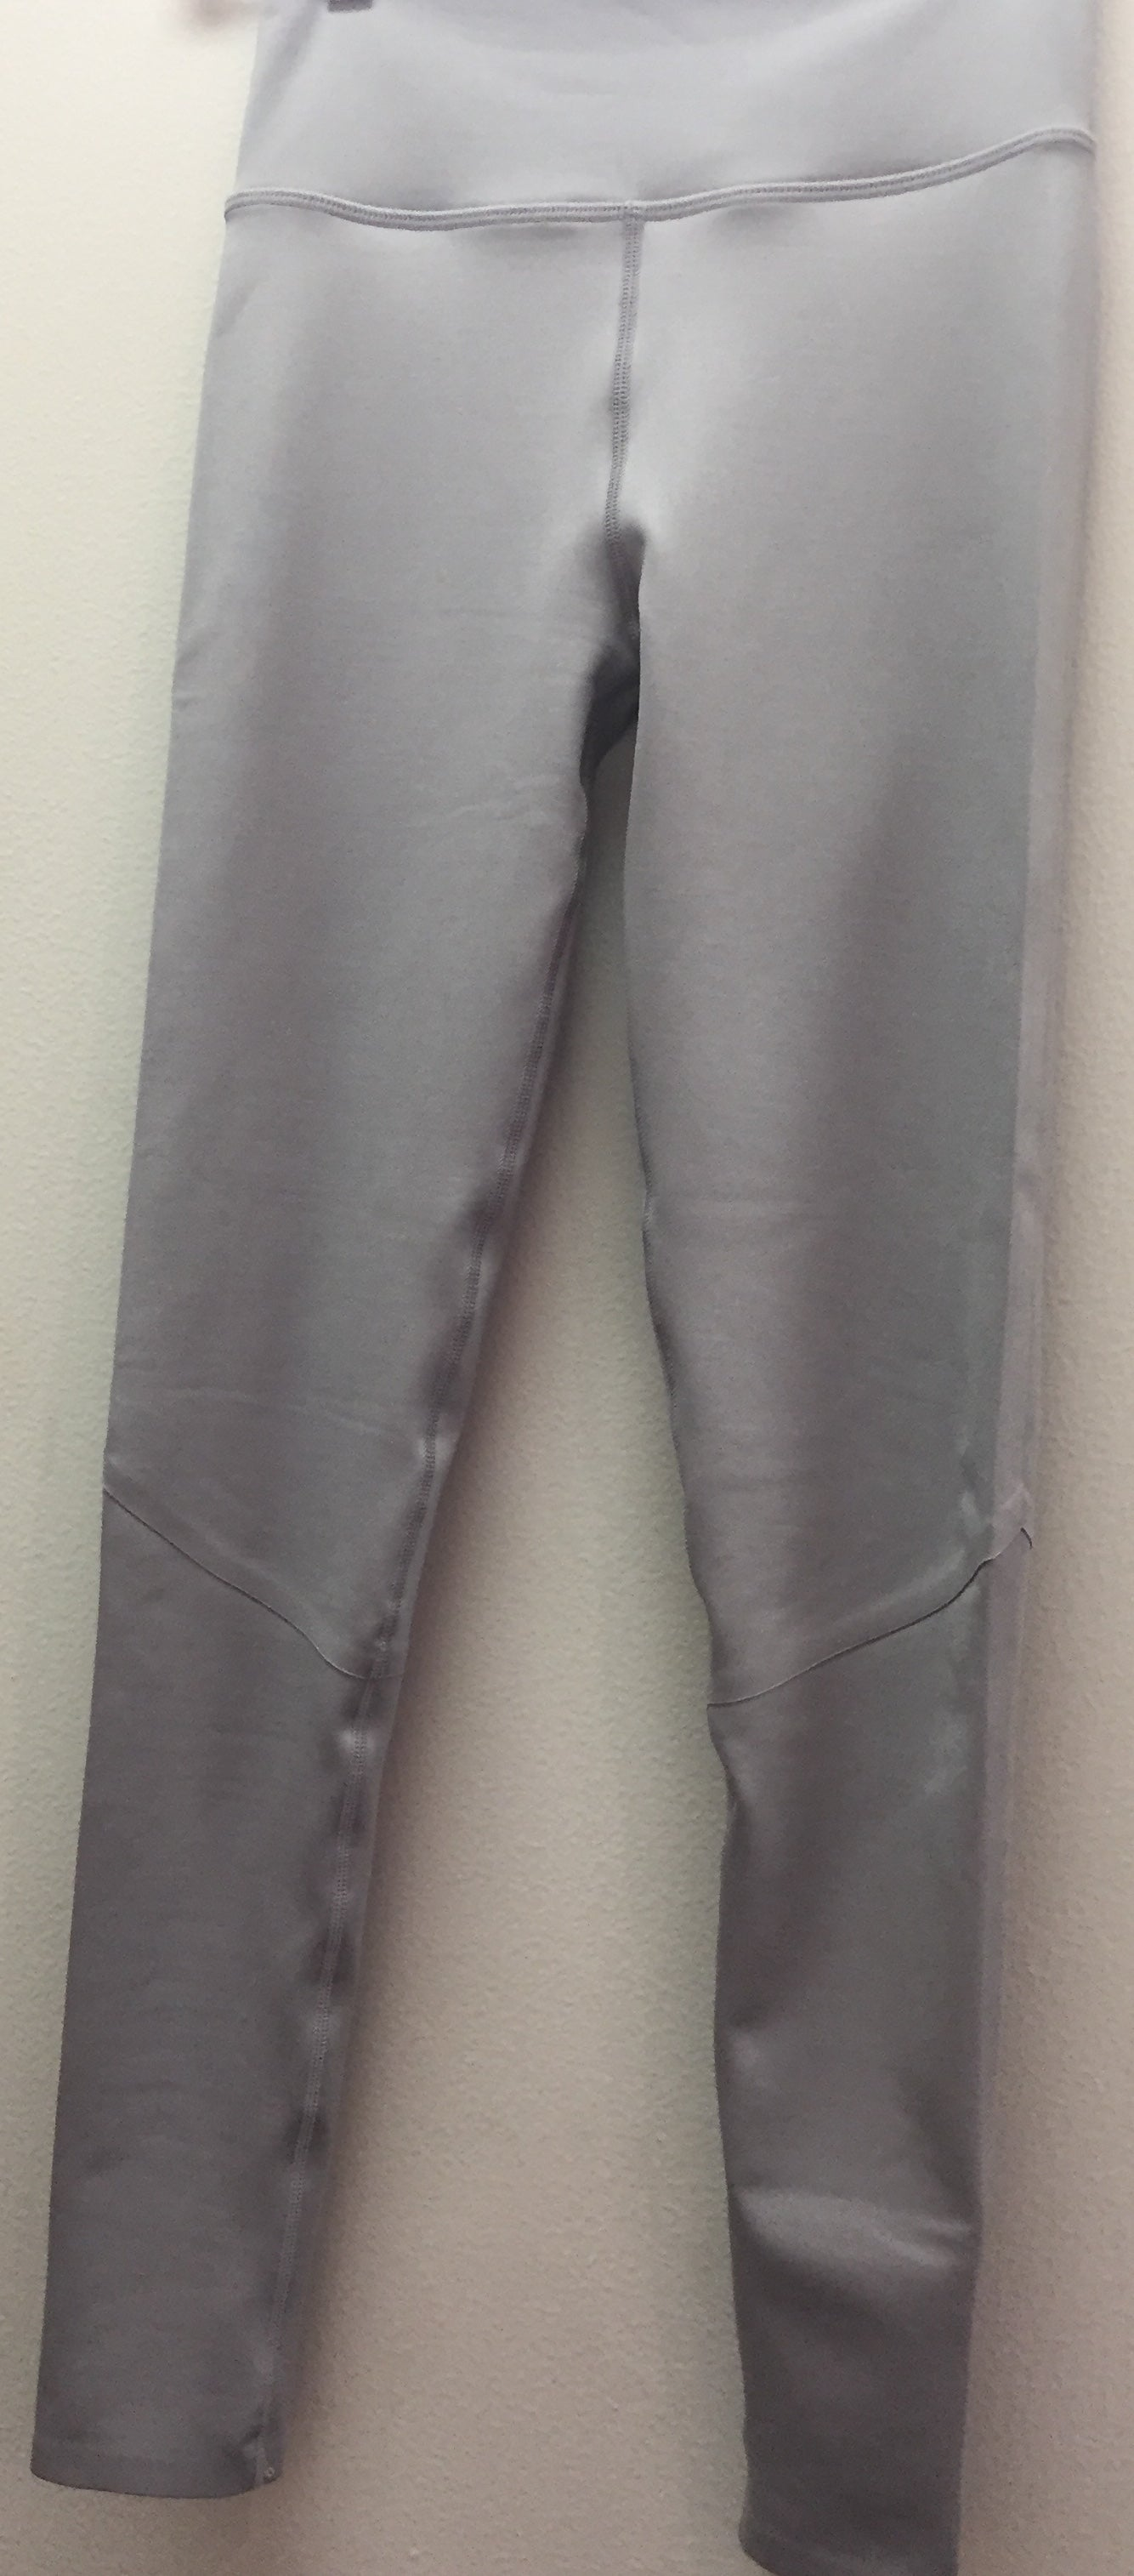 Capezio Women's Grey Full Length Leggings